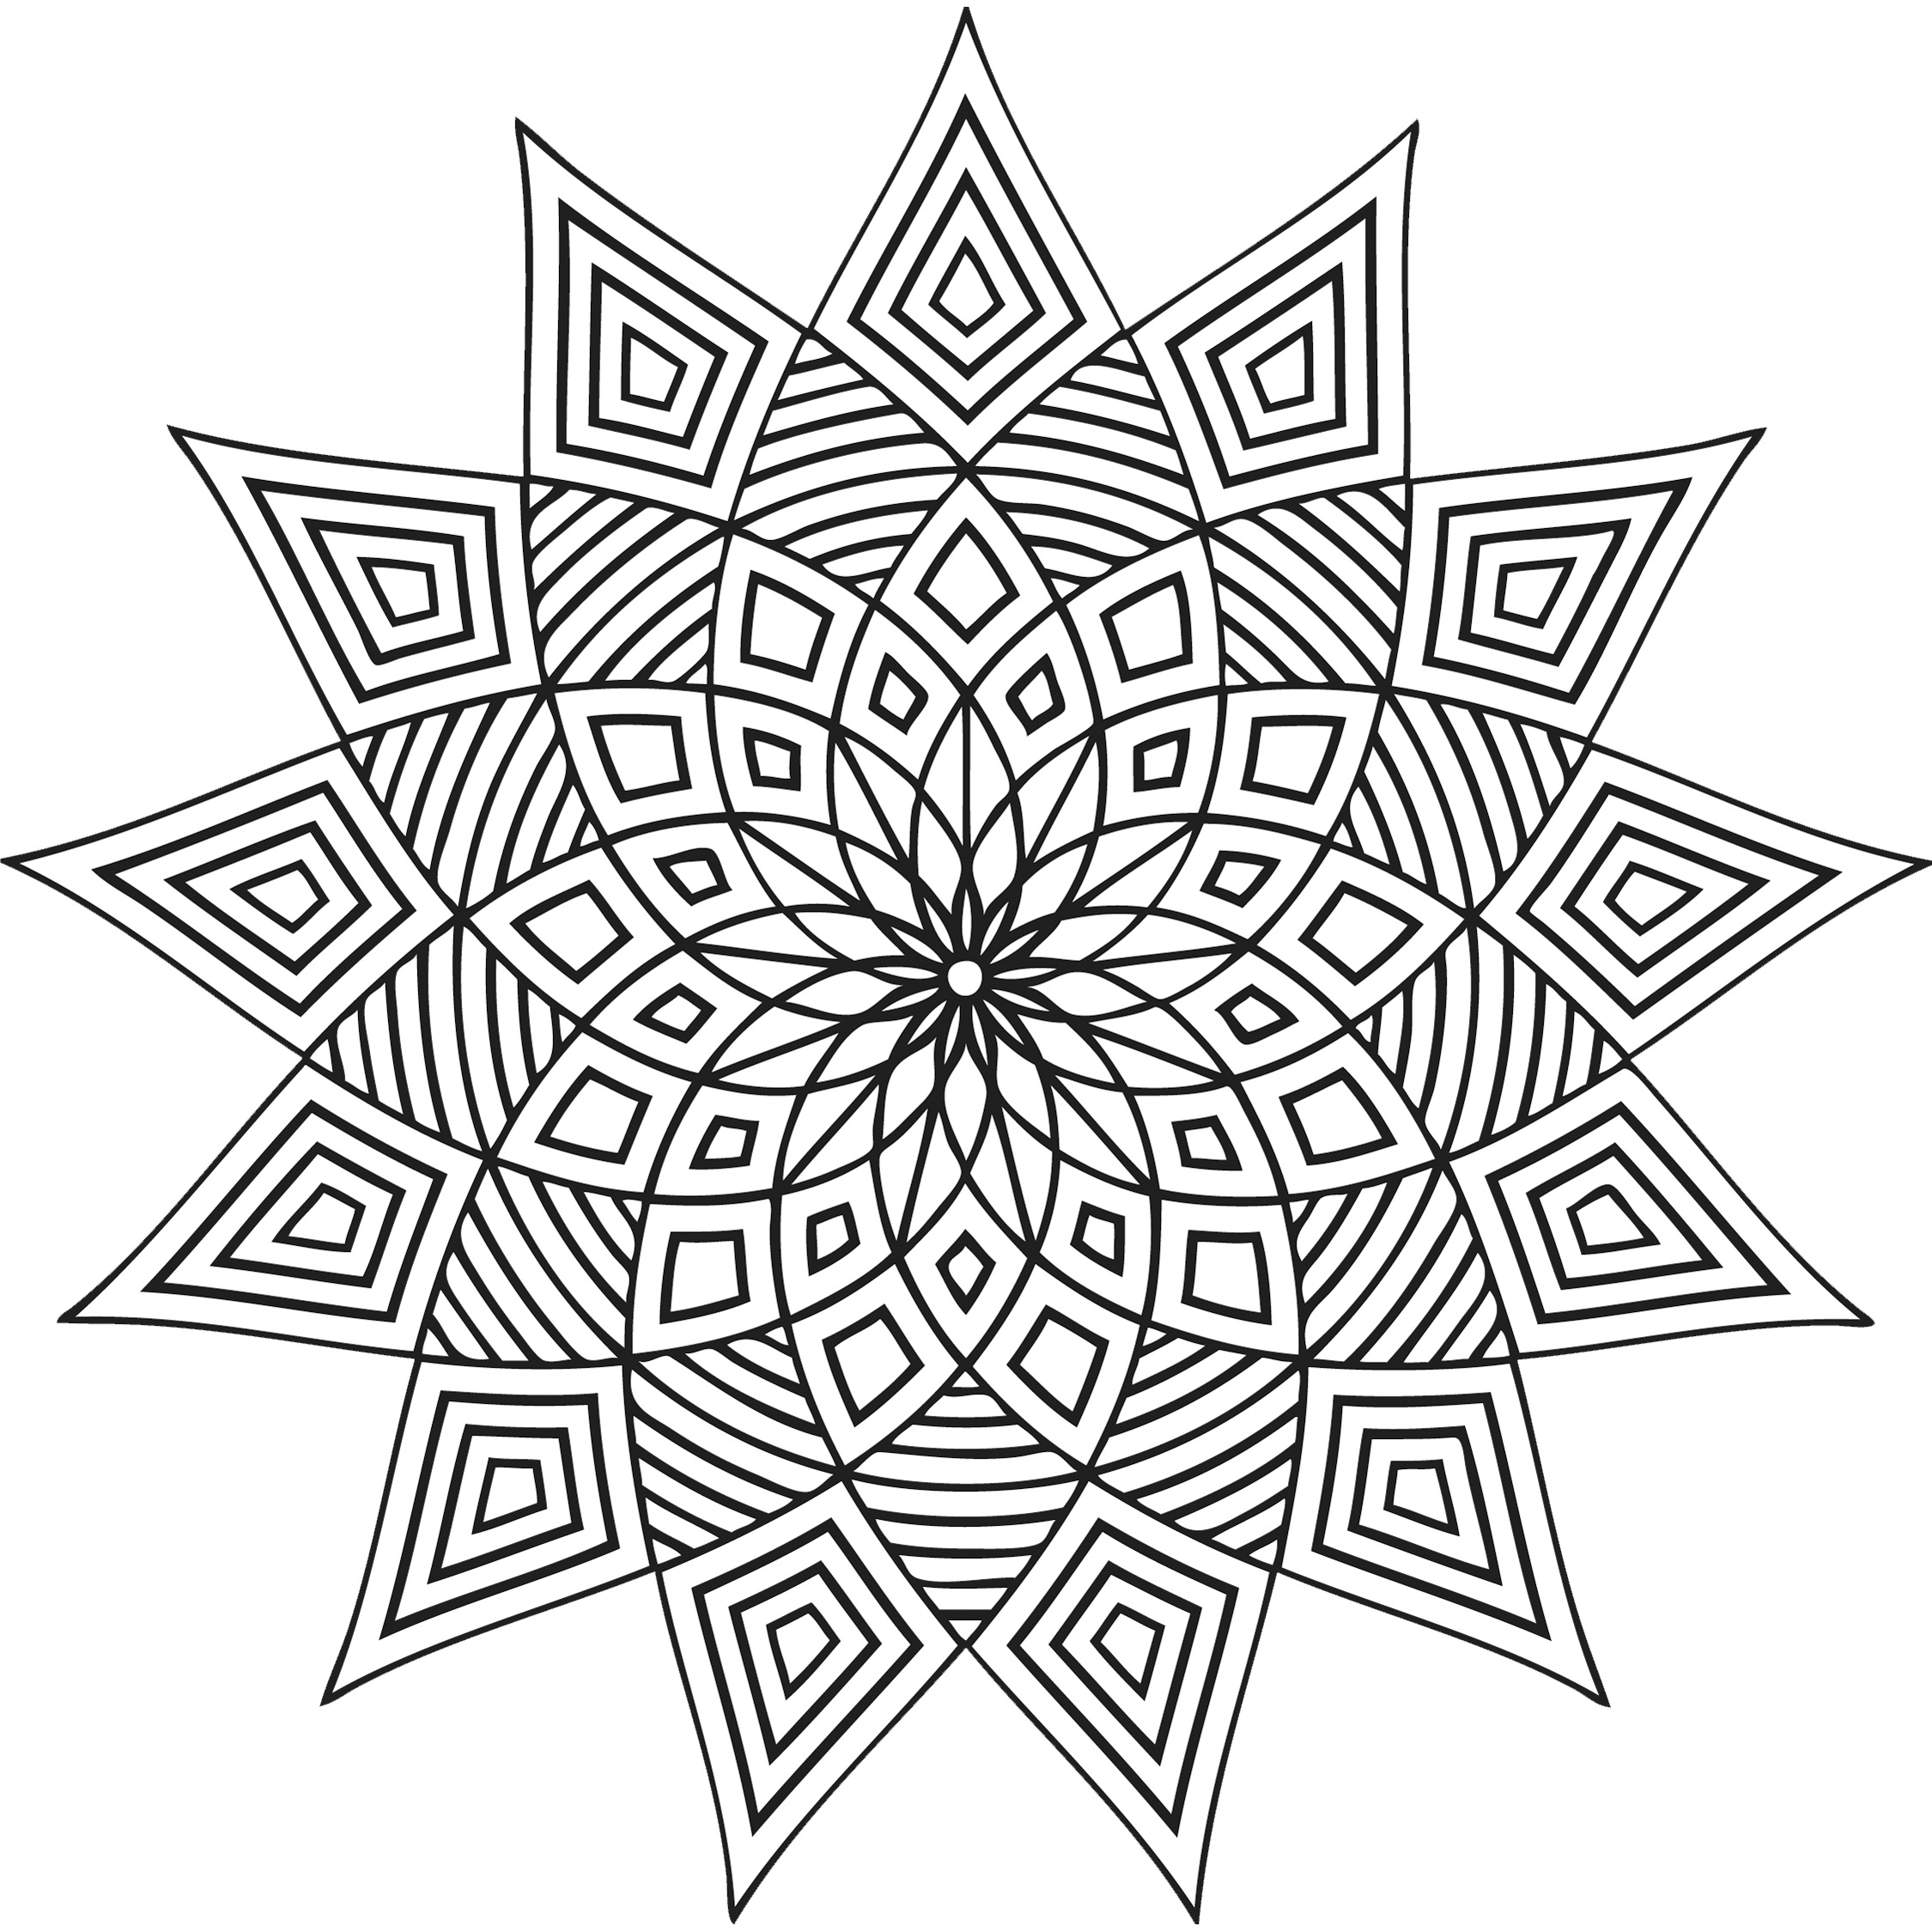 printable patterns to colour free printable geometric coloring pages for adults colour printable patterns to